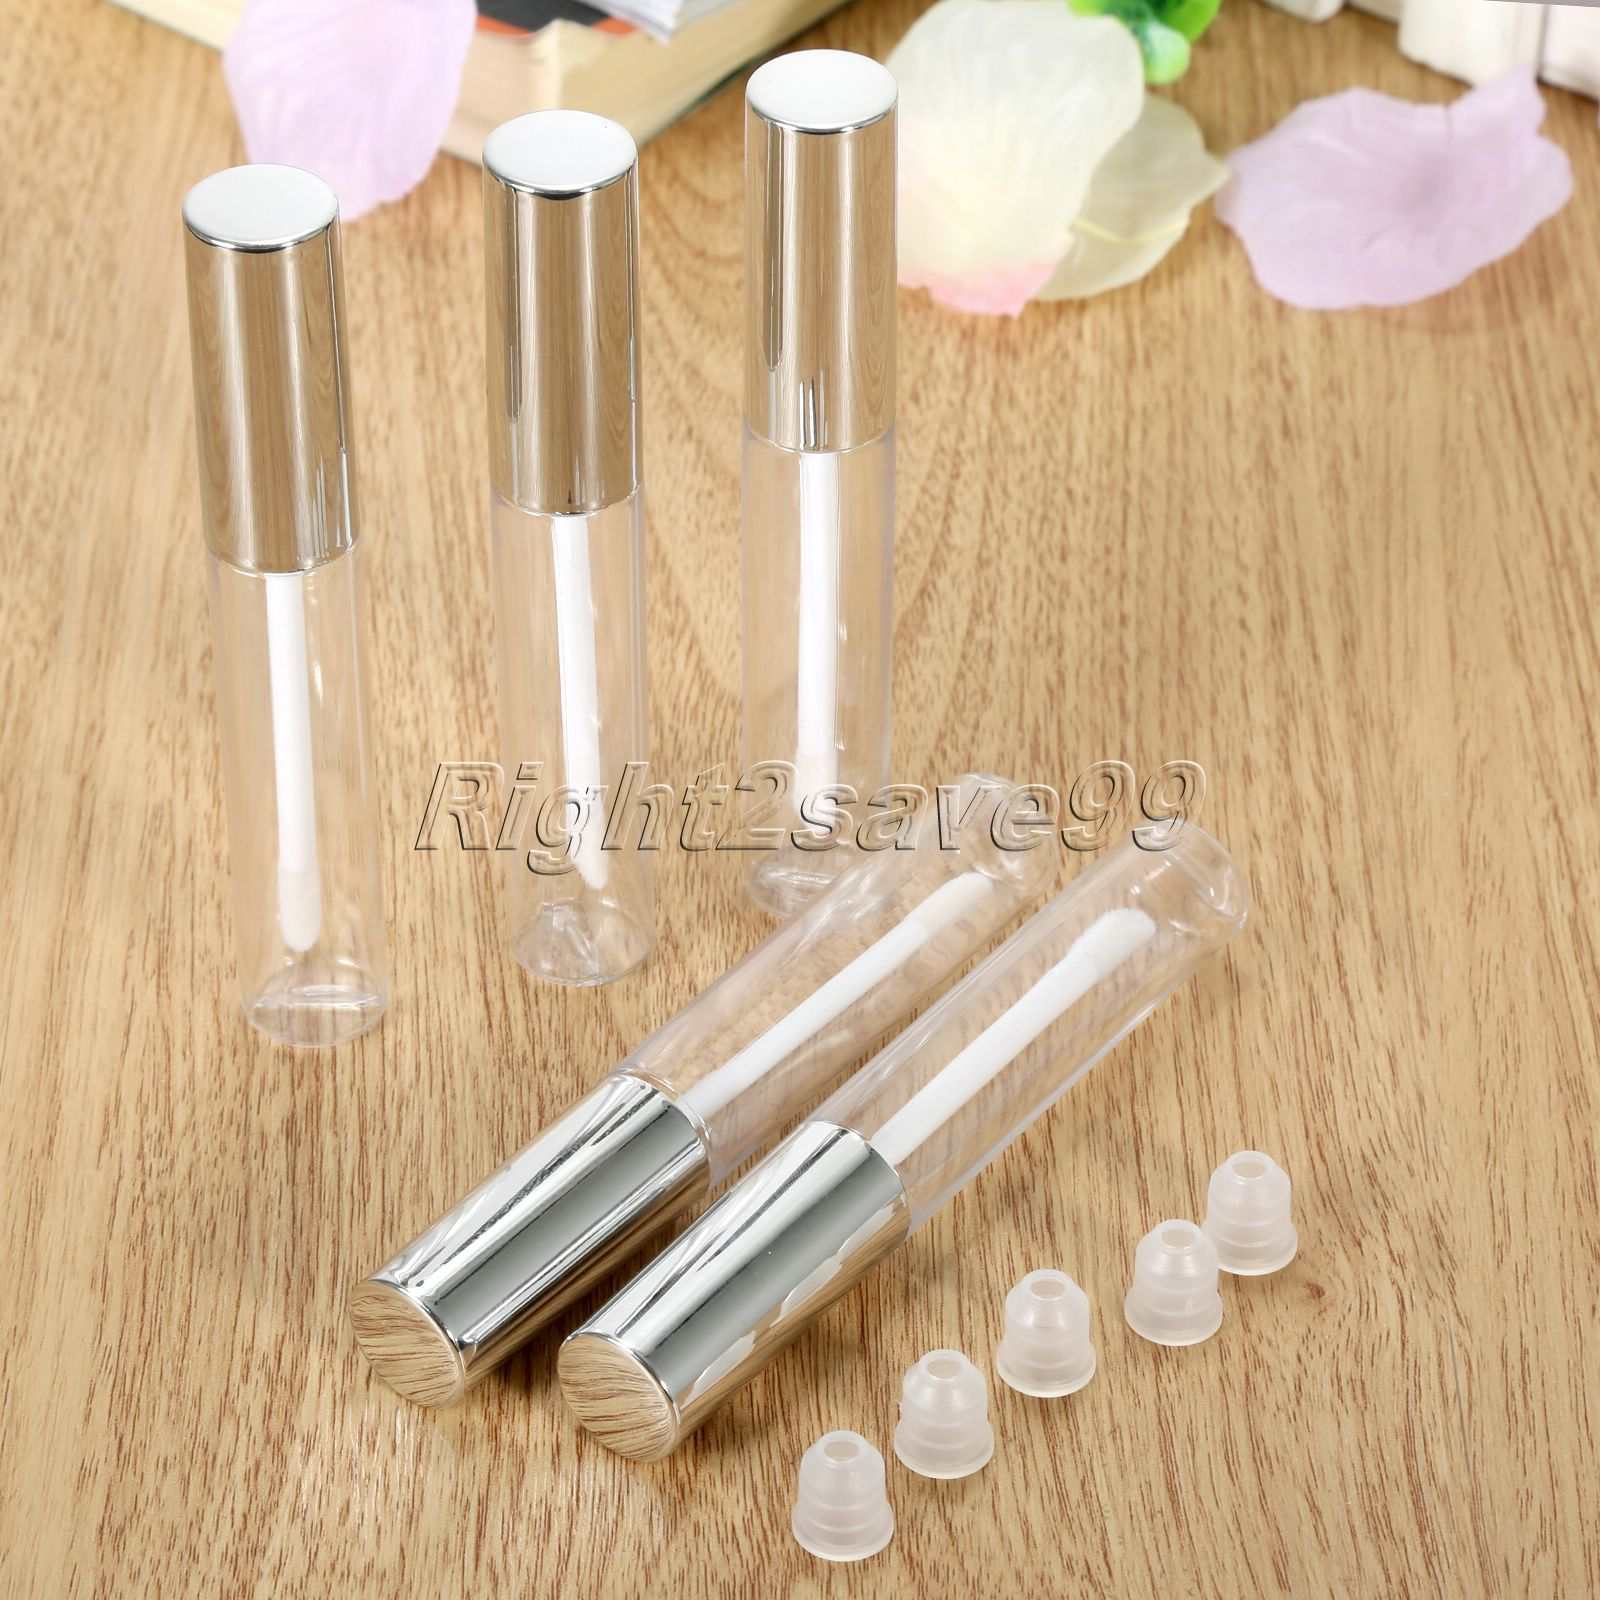 New Arrival 5pcs 10ml Lip Cute Bottle Empty Cosmetic Container Tube Travel Gloss Pretty Empty Clear Lip Containers For Makeup 2017 new 1pcs 50g 100g facial mask cosmetic containers multicolors empty cylinder mask pp bottle box cream jars makeup cosmetic